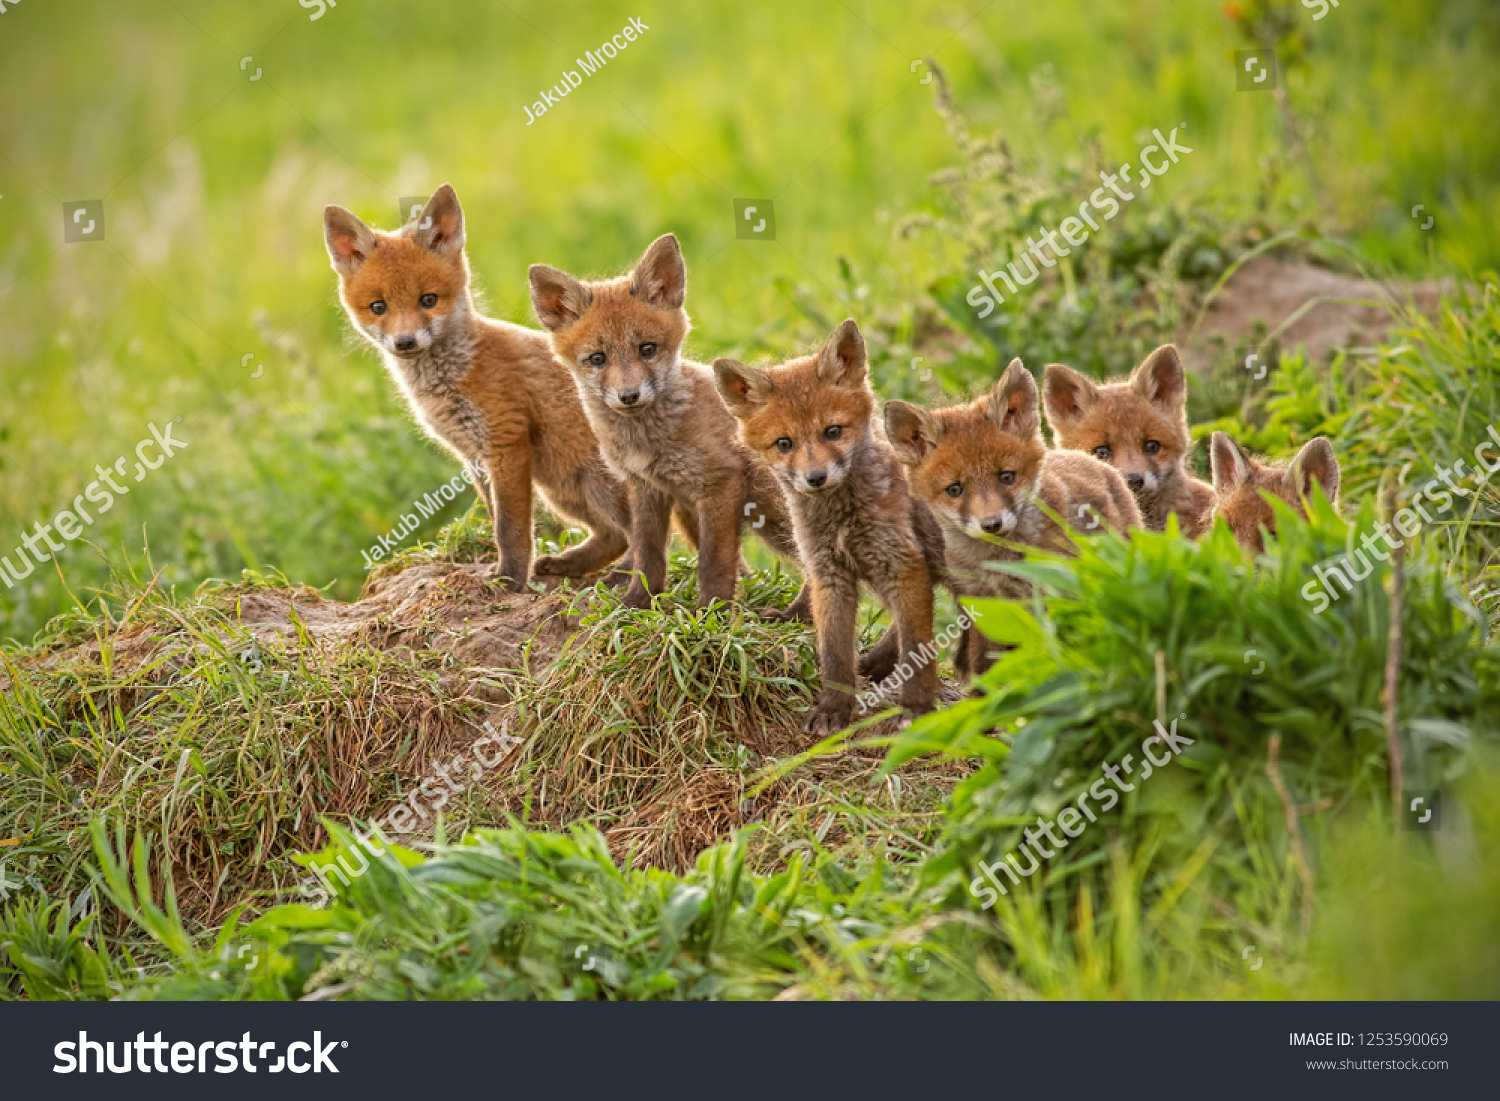 Red fox, vulpes vulpes, small young cubs near den curiously weatching around. Cute little wild predators in natural environment. Brotherhood of animlas in wilderness. #1253590069